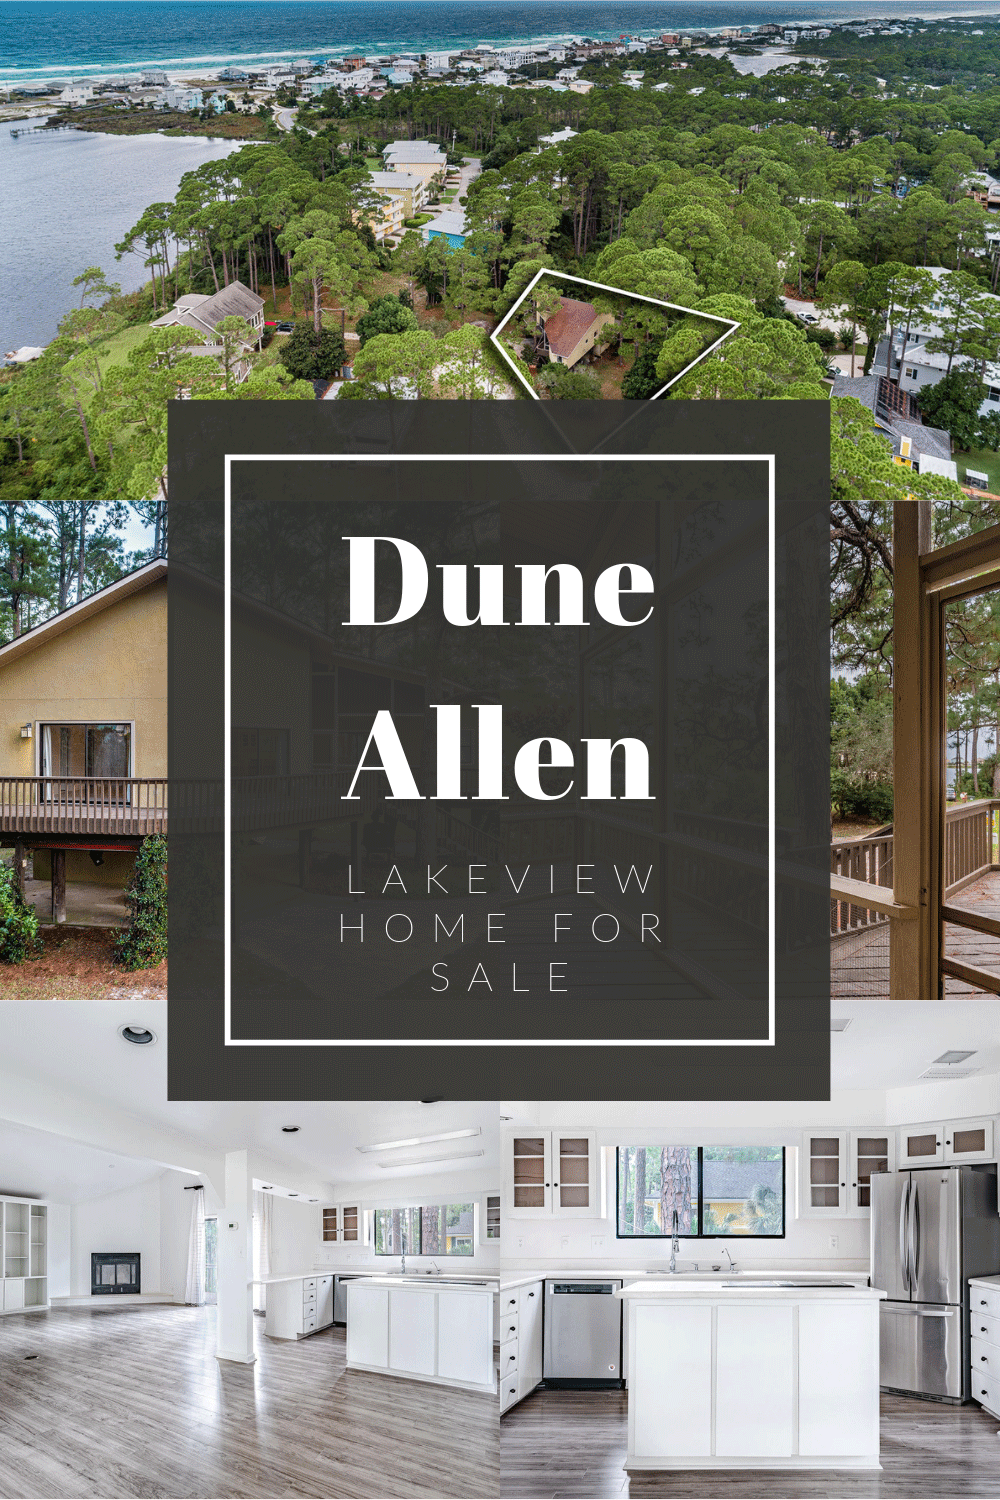 Dune Allen Lakeview Home for Sale